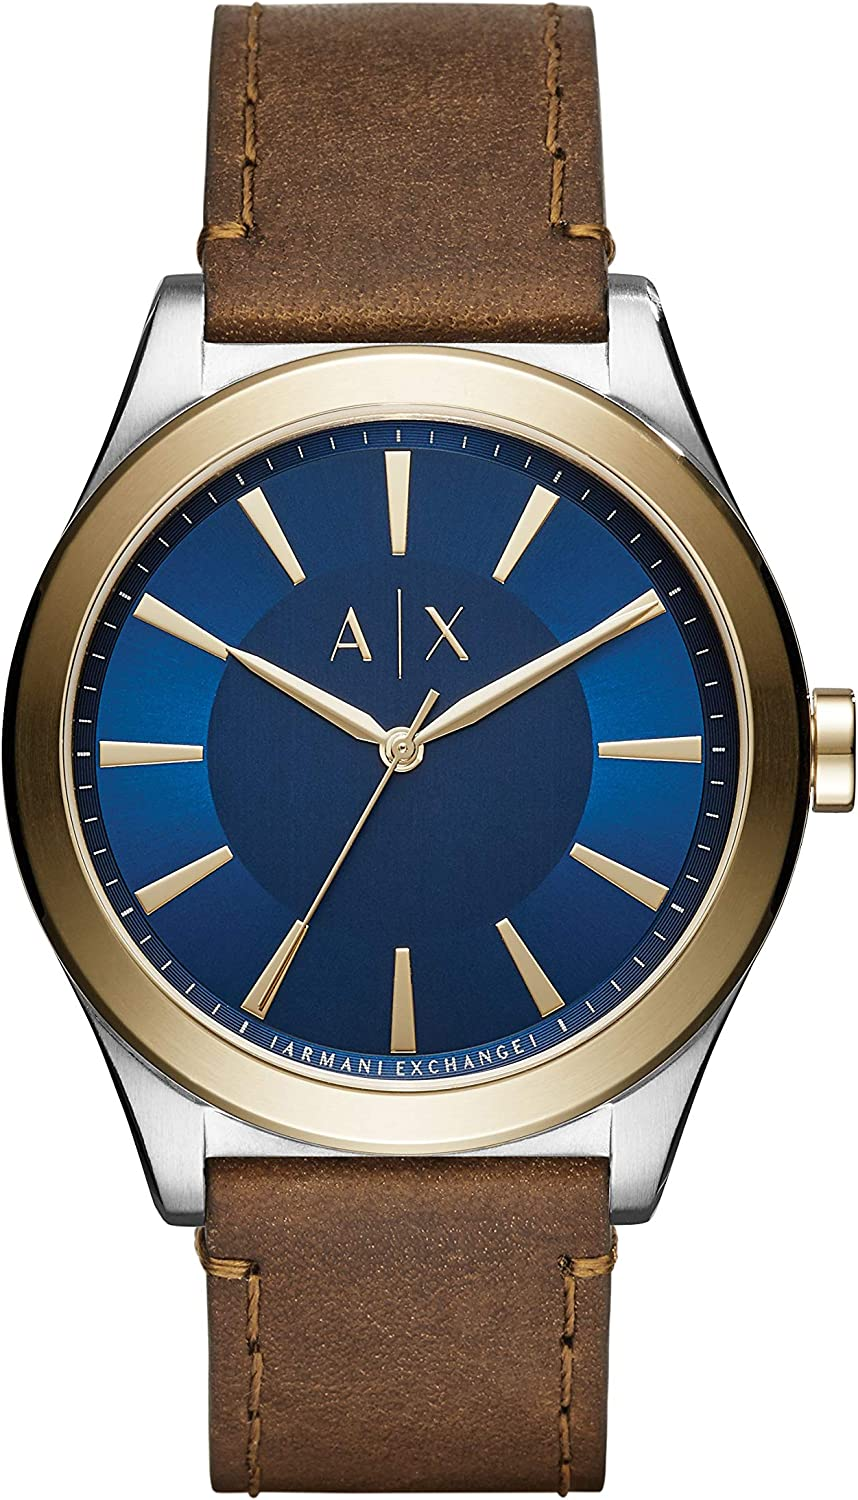 A:X Men's Brown Leather Watch AX2334